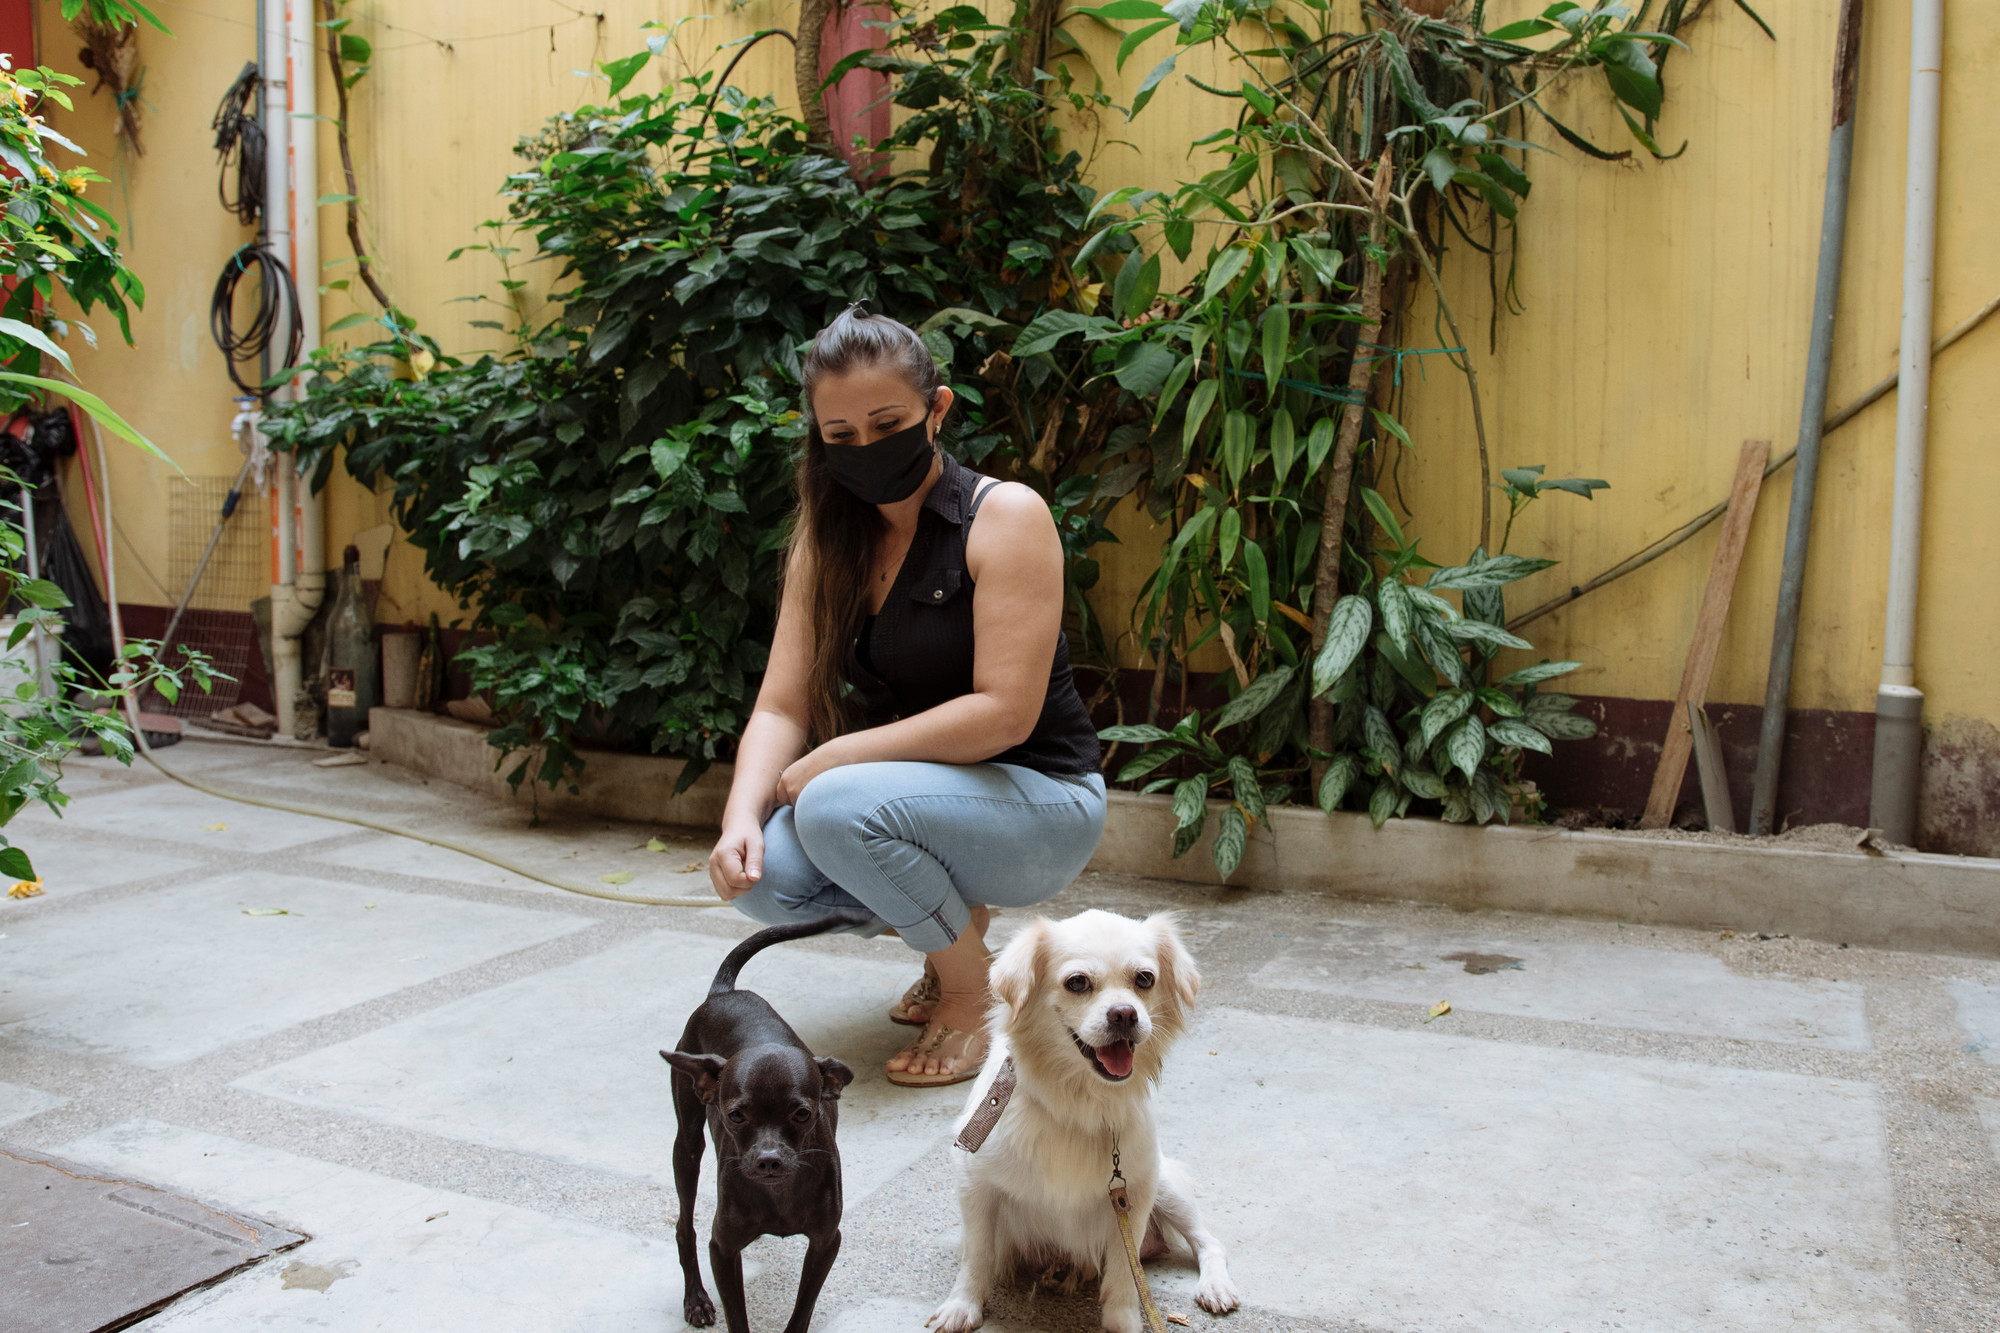 A woman in a face mask kneels while looking at two dogs in front of her.